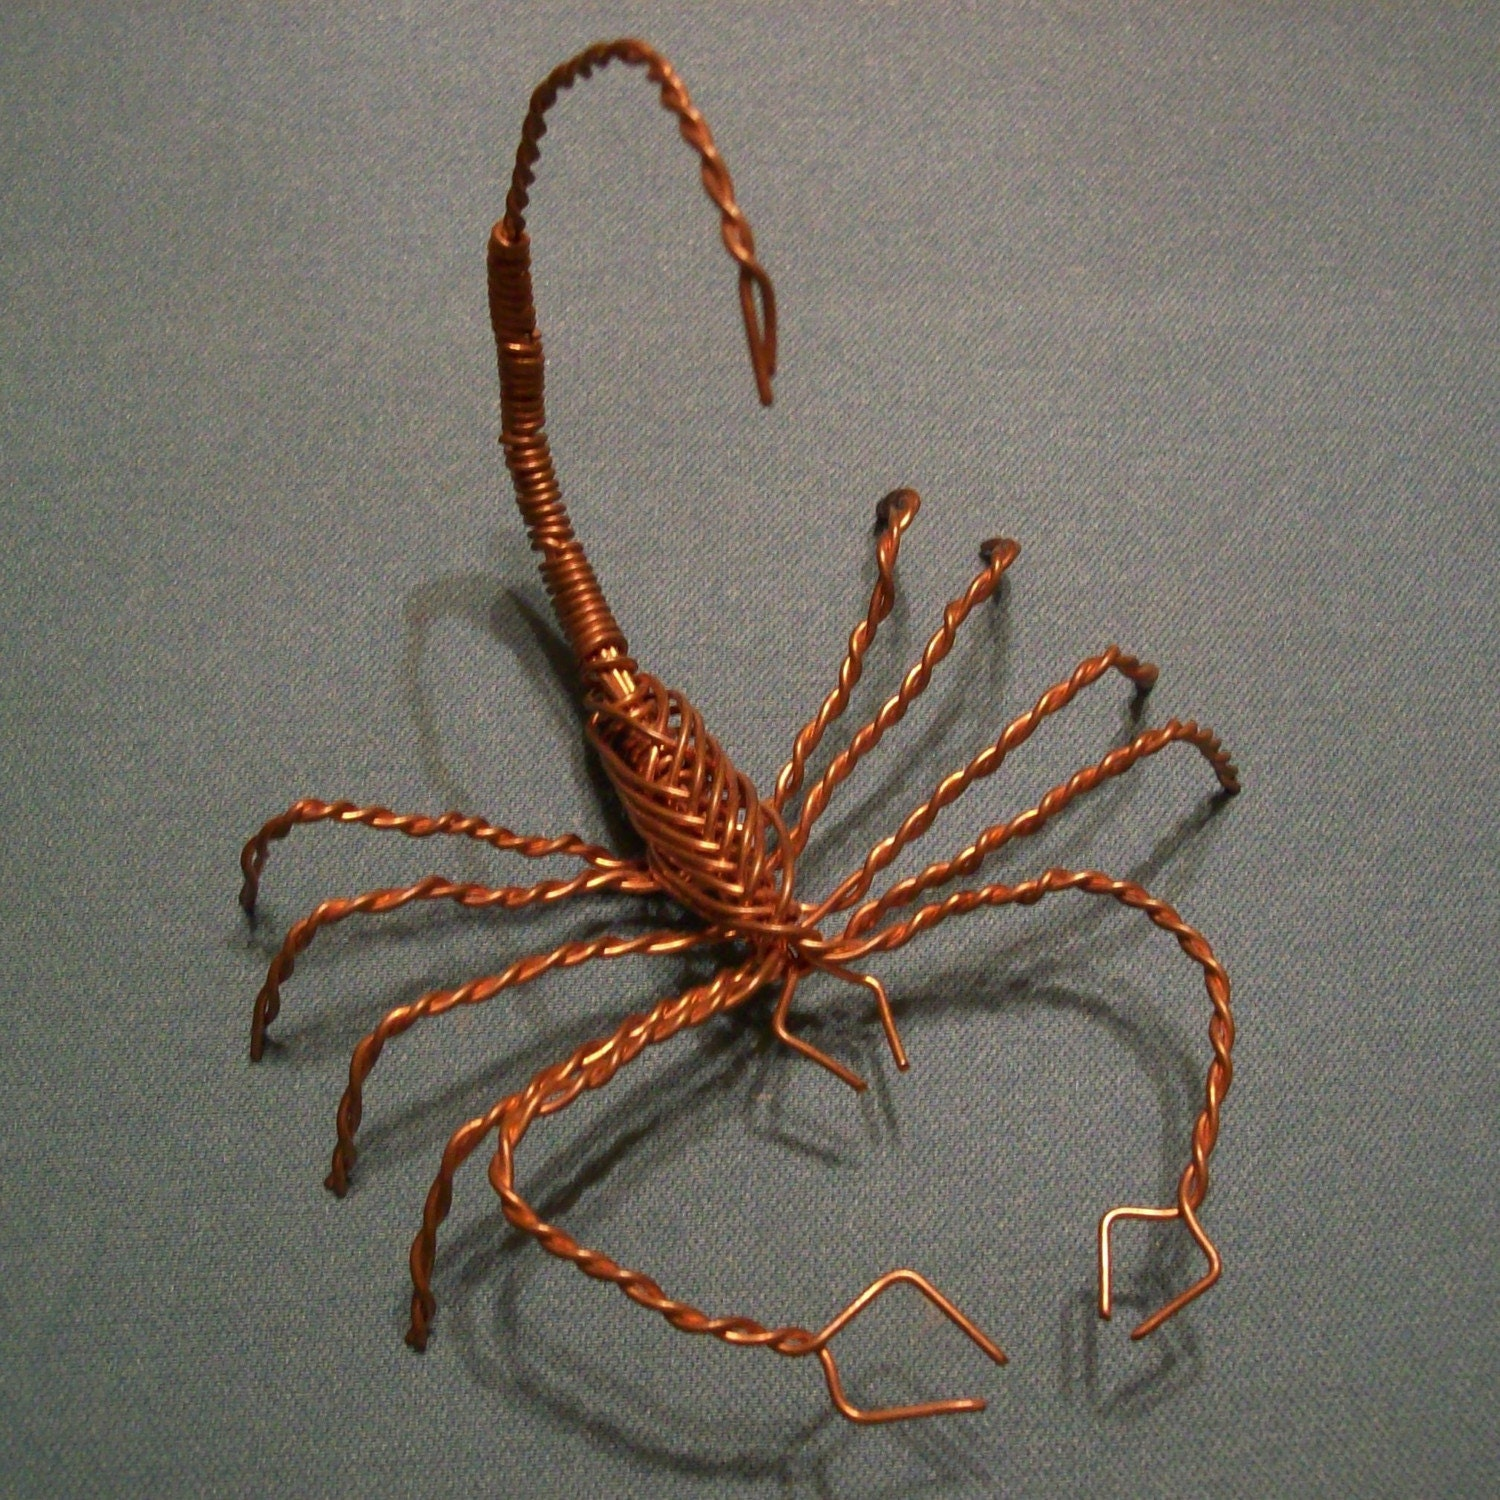 Copper wire scorpion